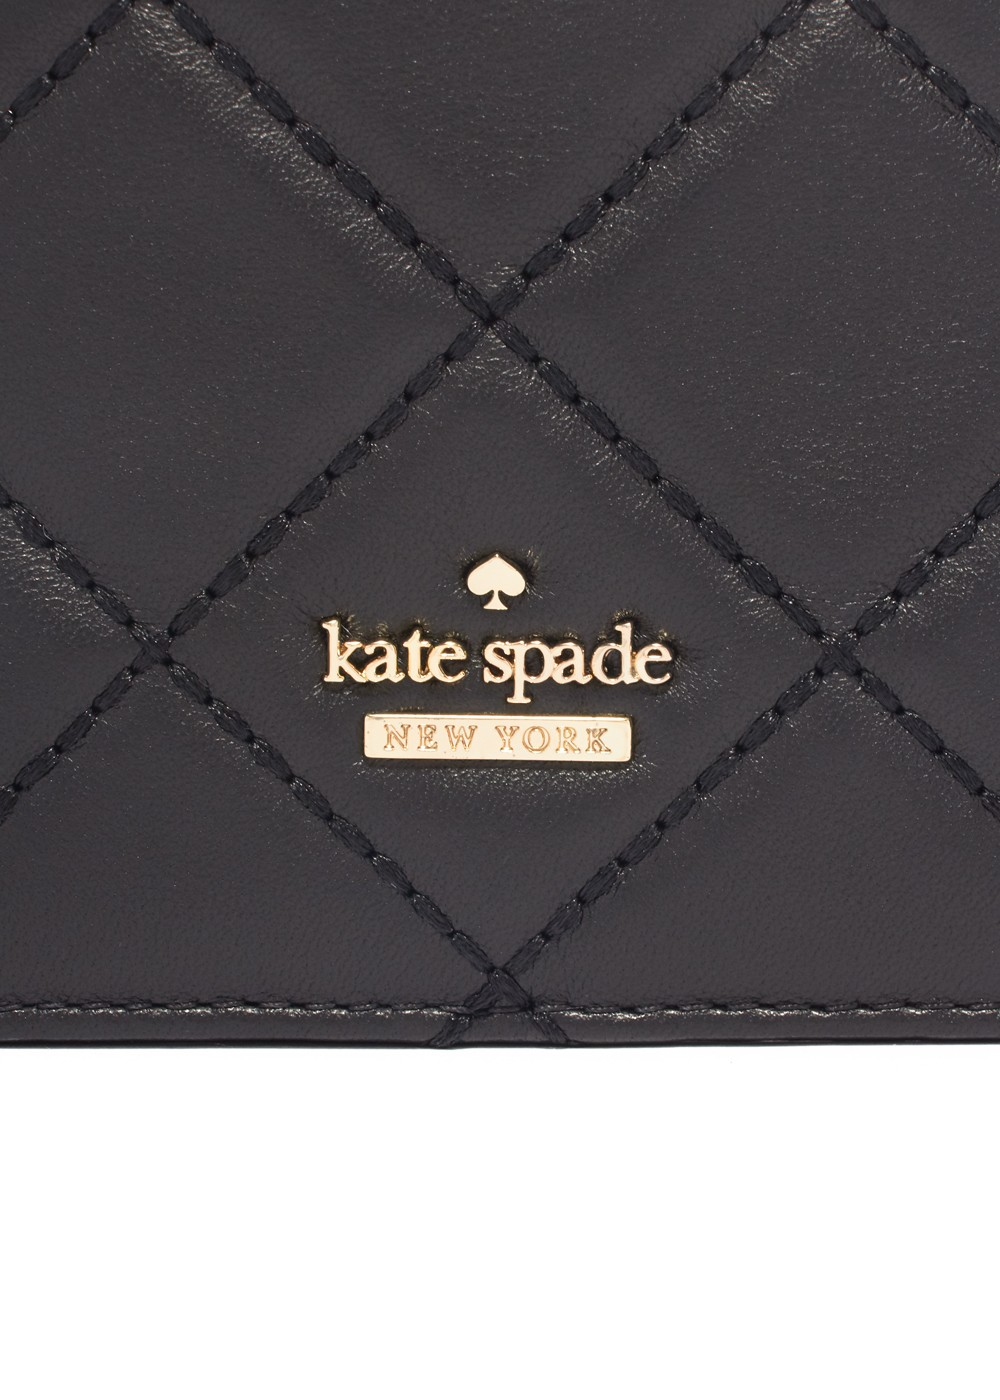 kate spade NEW YORK|ケイトスペードニューヨーク|IPHONE CASES|アイフォンケース|iPhoneX CASE QUILTED LEATHER SMARTPHONE SLEEVE CROSSBODY